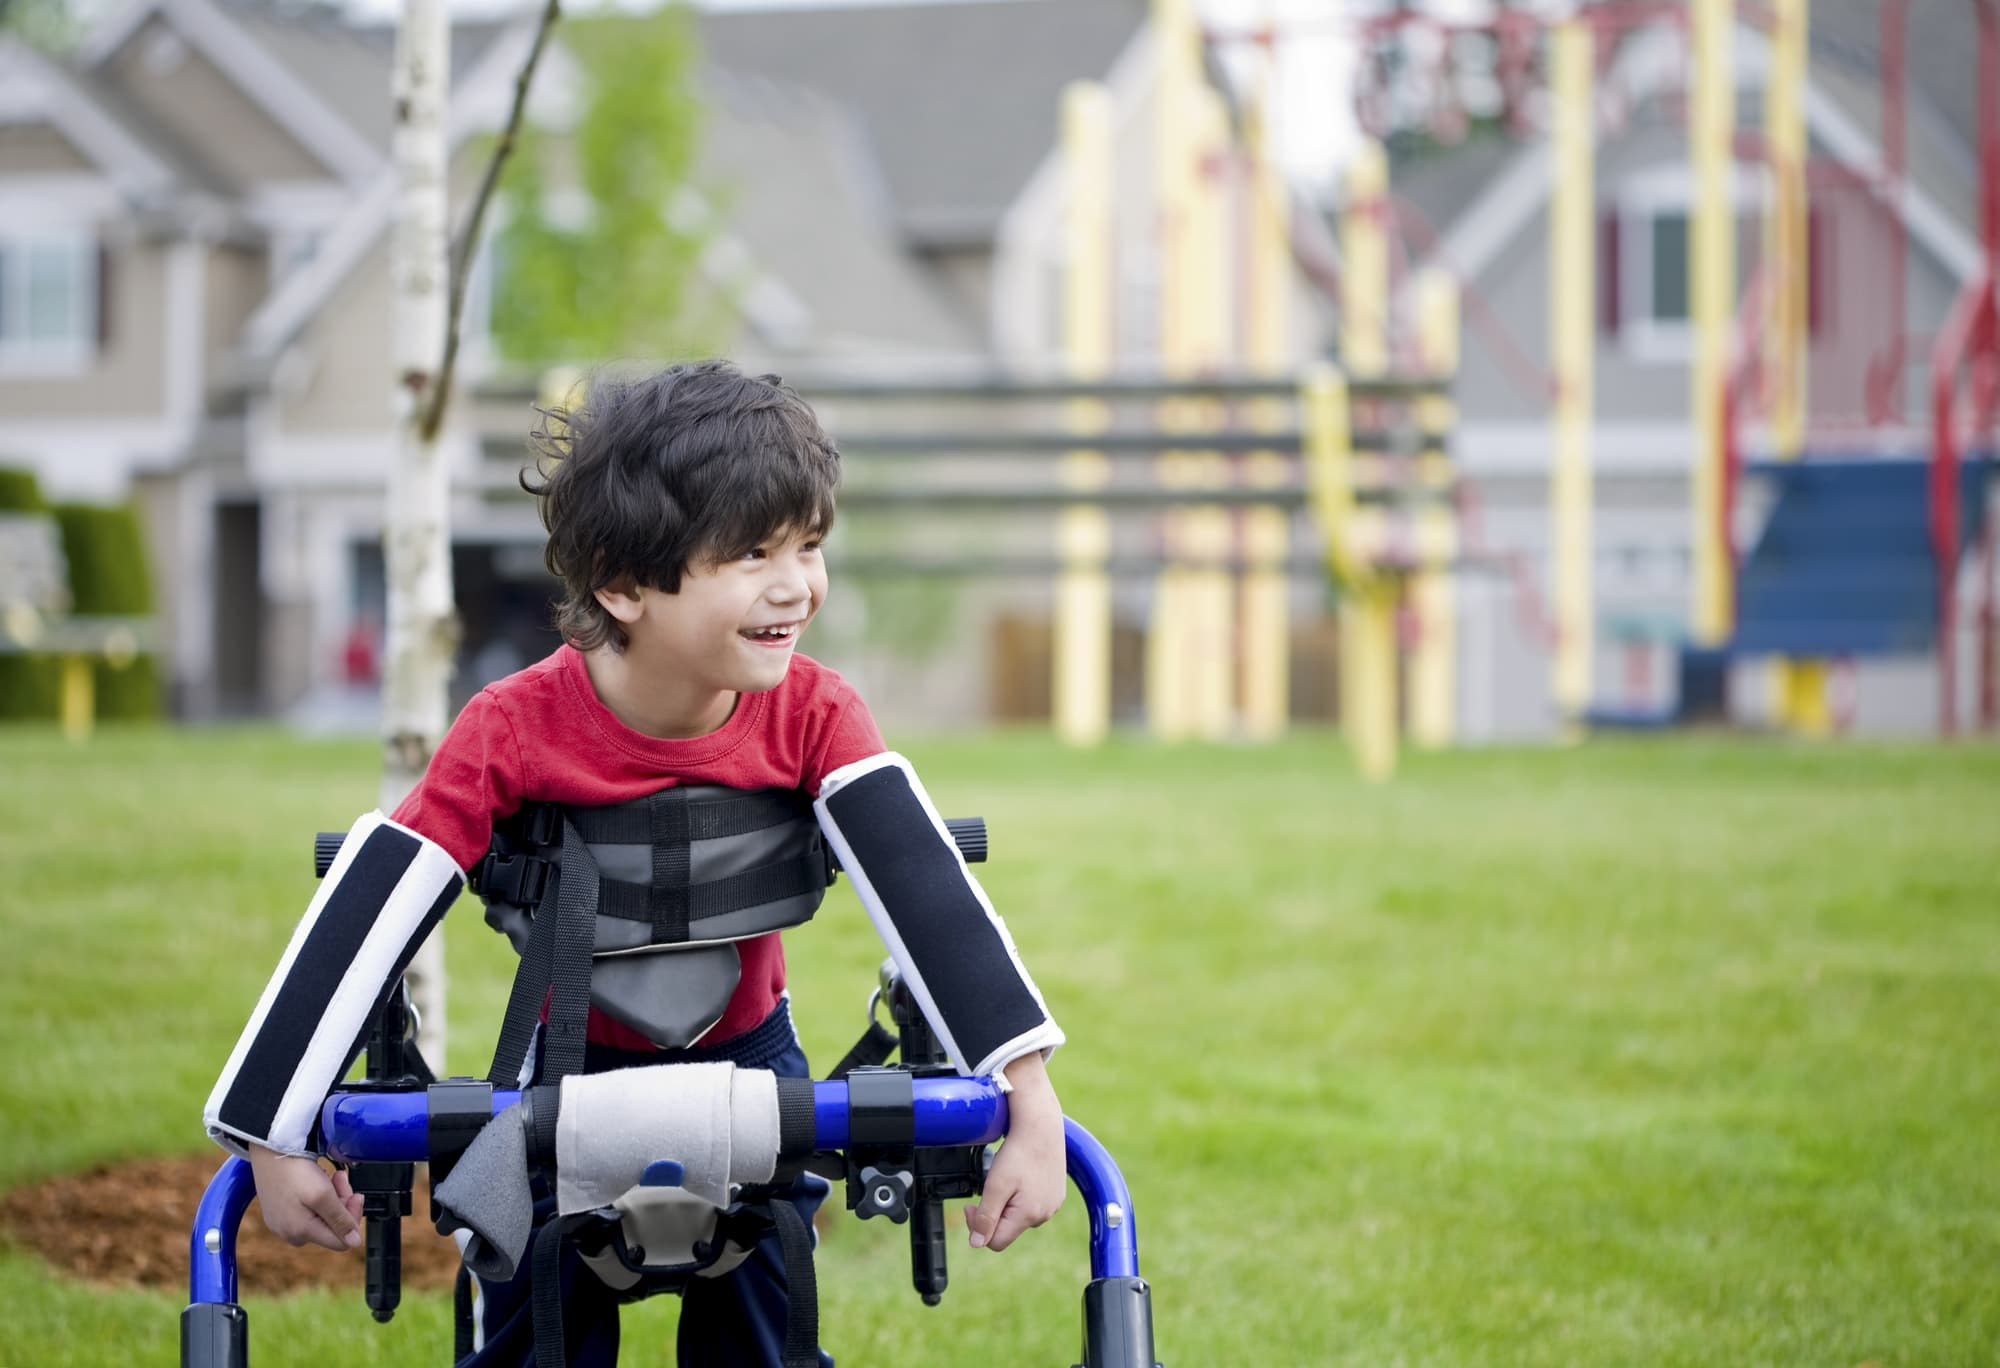 cerebral palsy patient